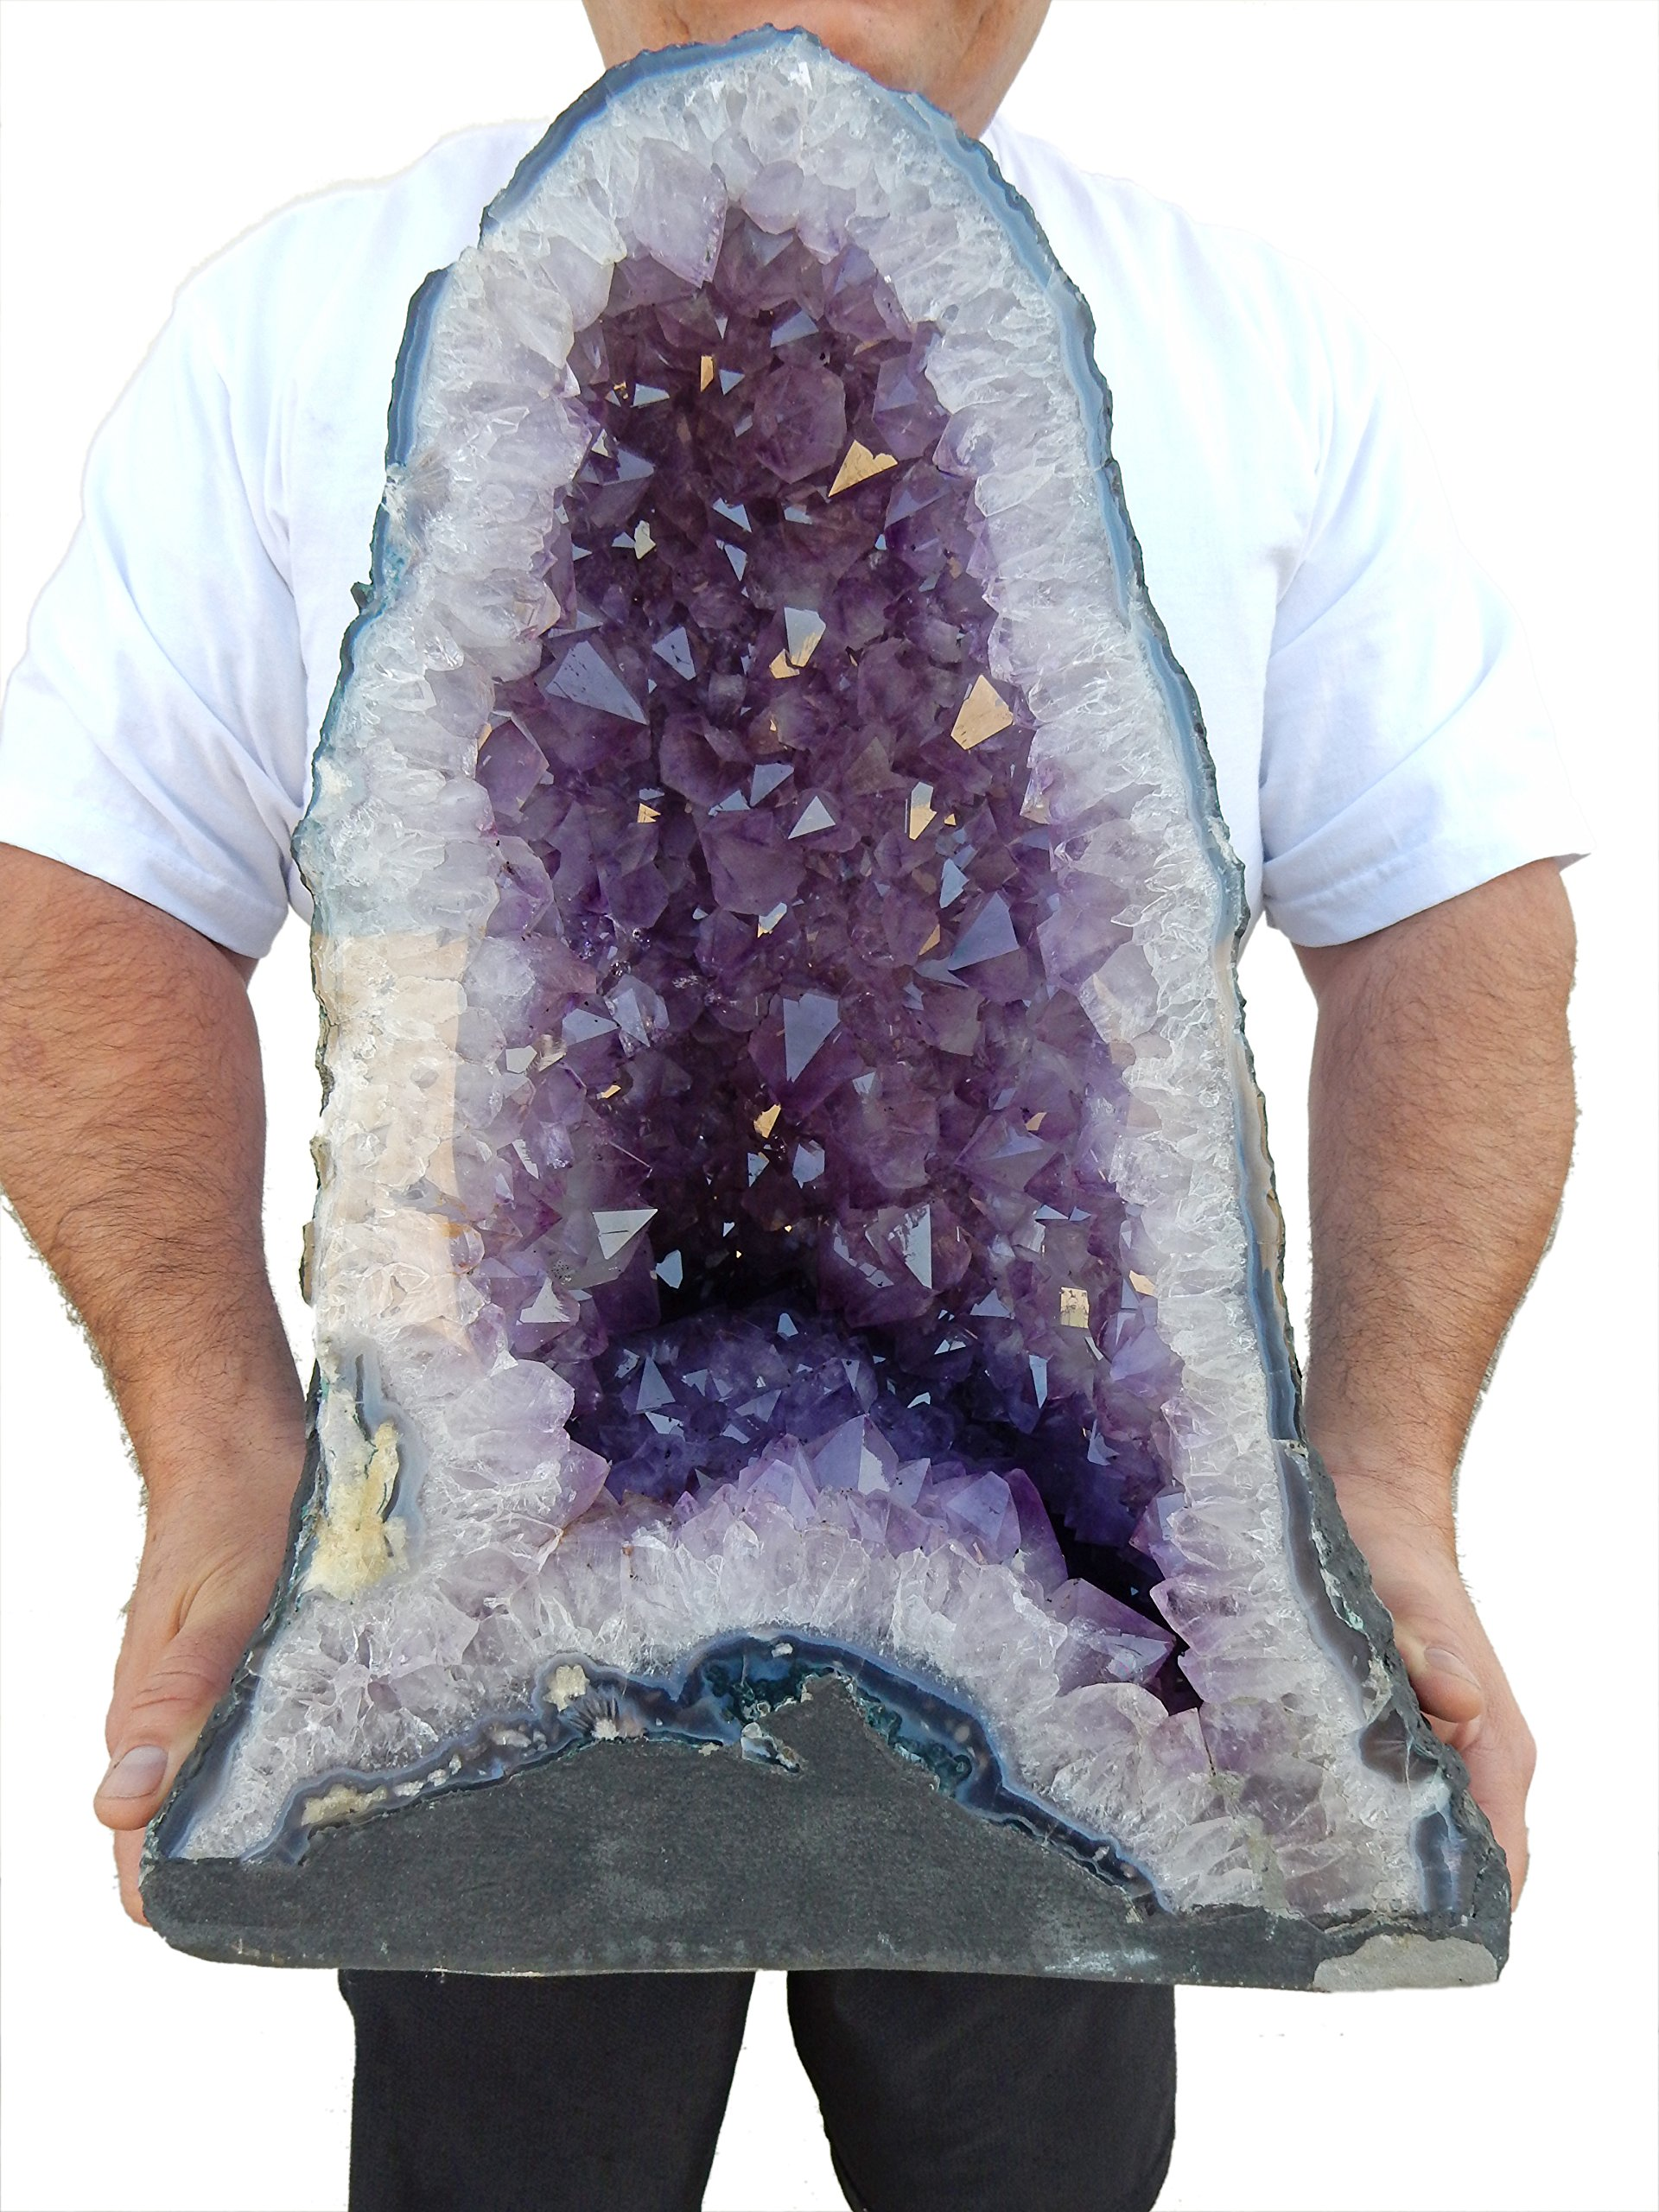 Large Amethyst Crystal Cathedral ~ Raw Amethyst Stone Geode ~ 71.5 lb Amazing Amethyst Cluster by Beverly Oaks (AC-26A)